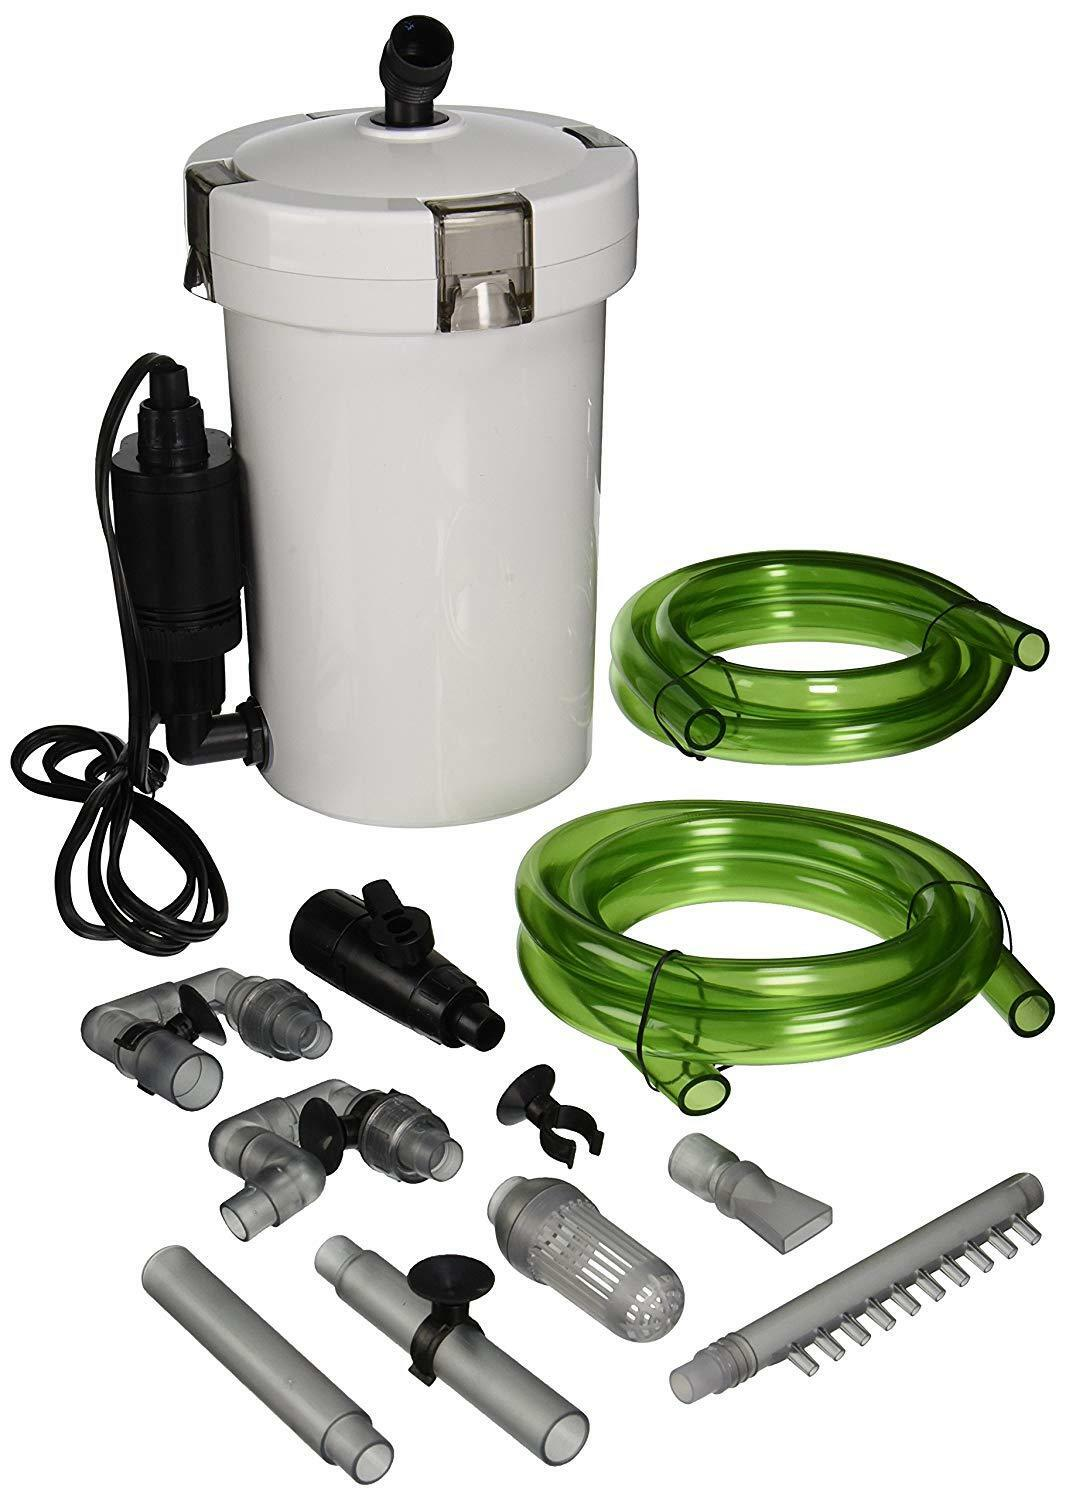 Tech'N'Toy Sunsun Hw-603B 106 Gph 3-Stage External Canister Filter